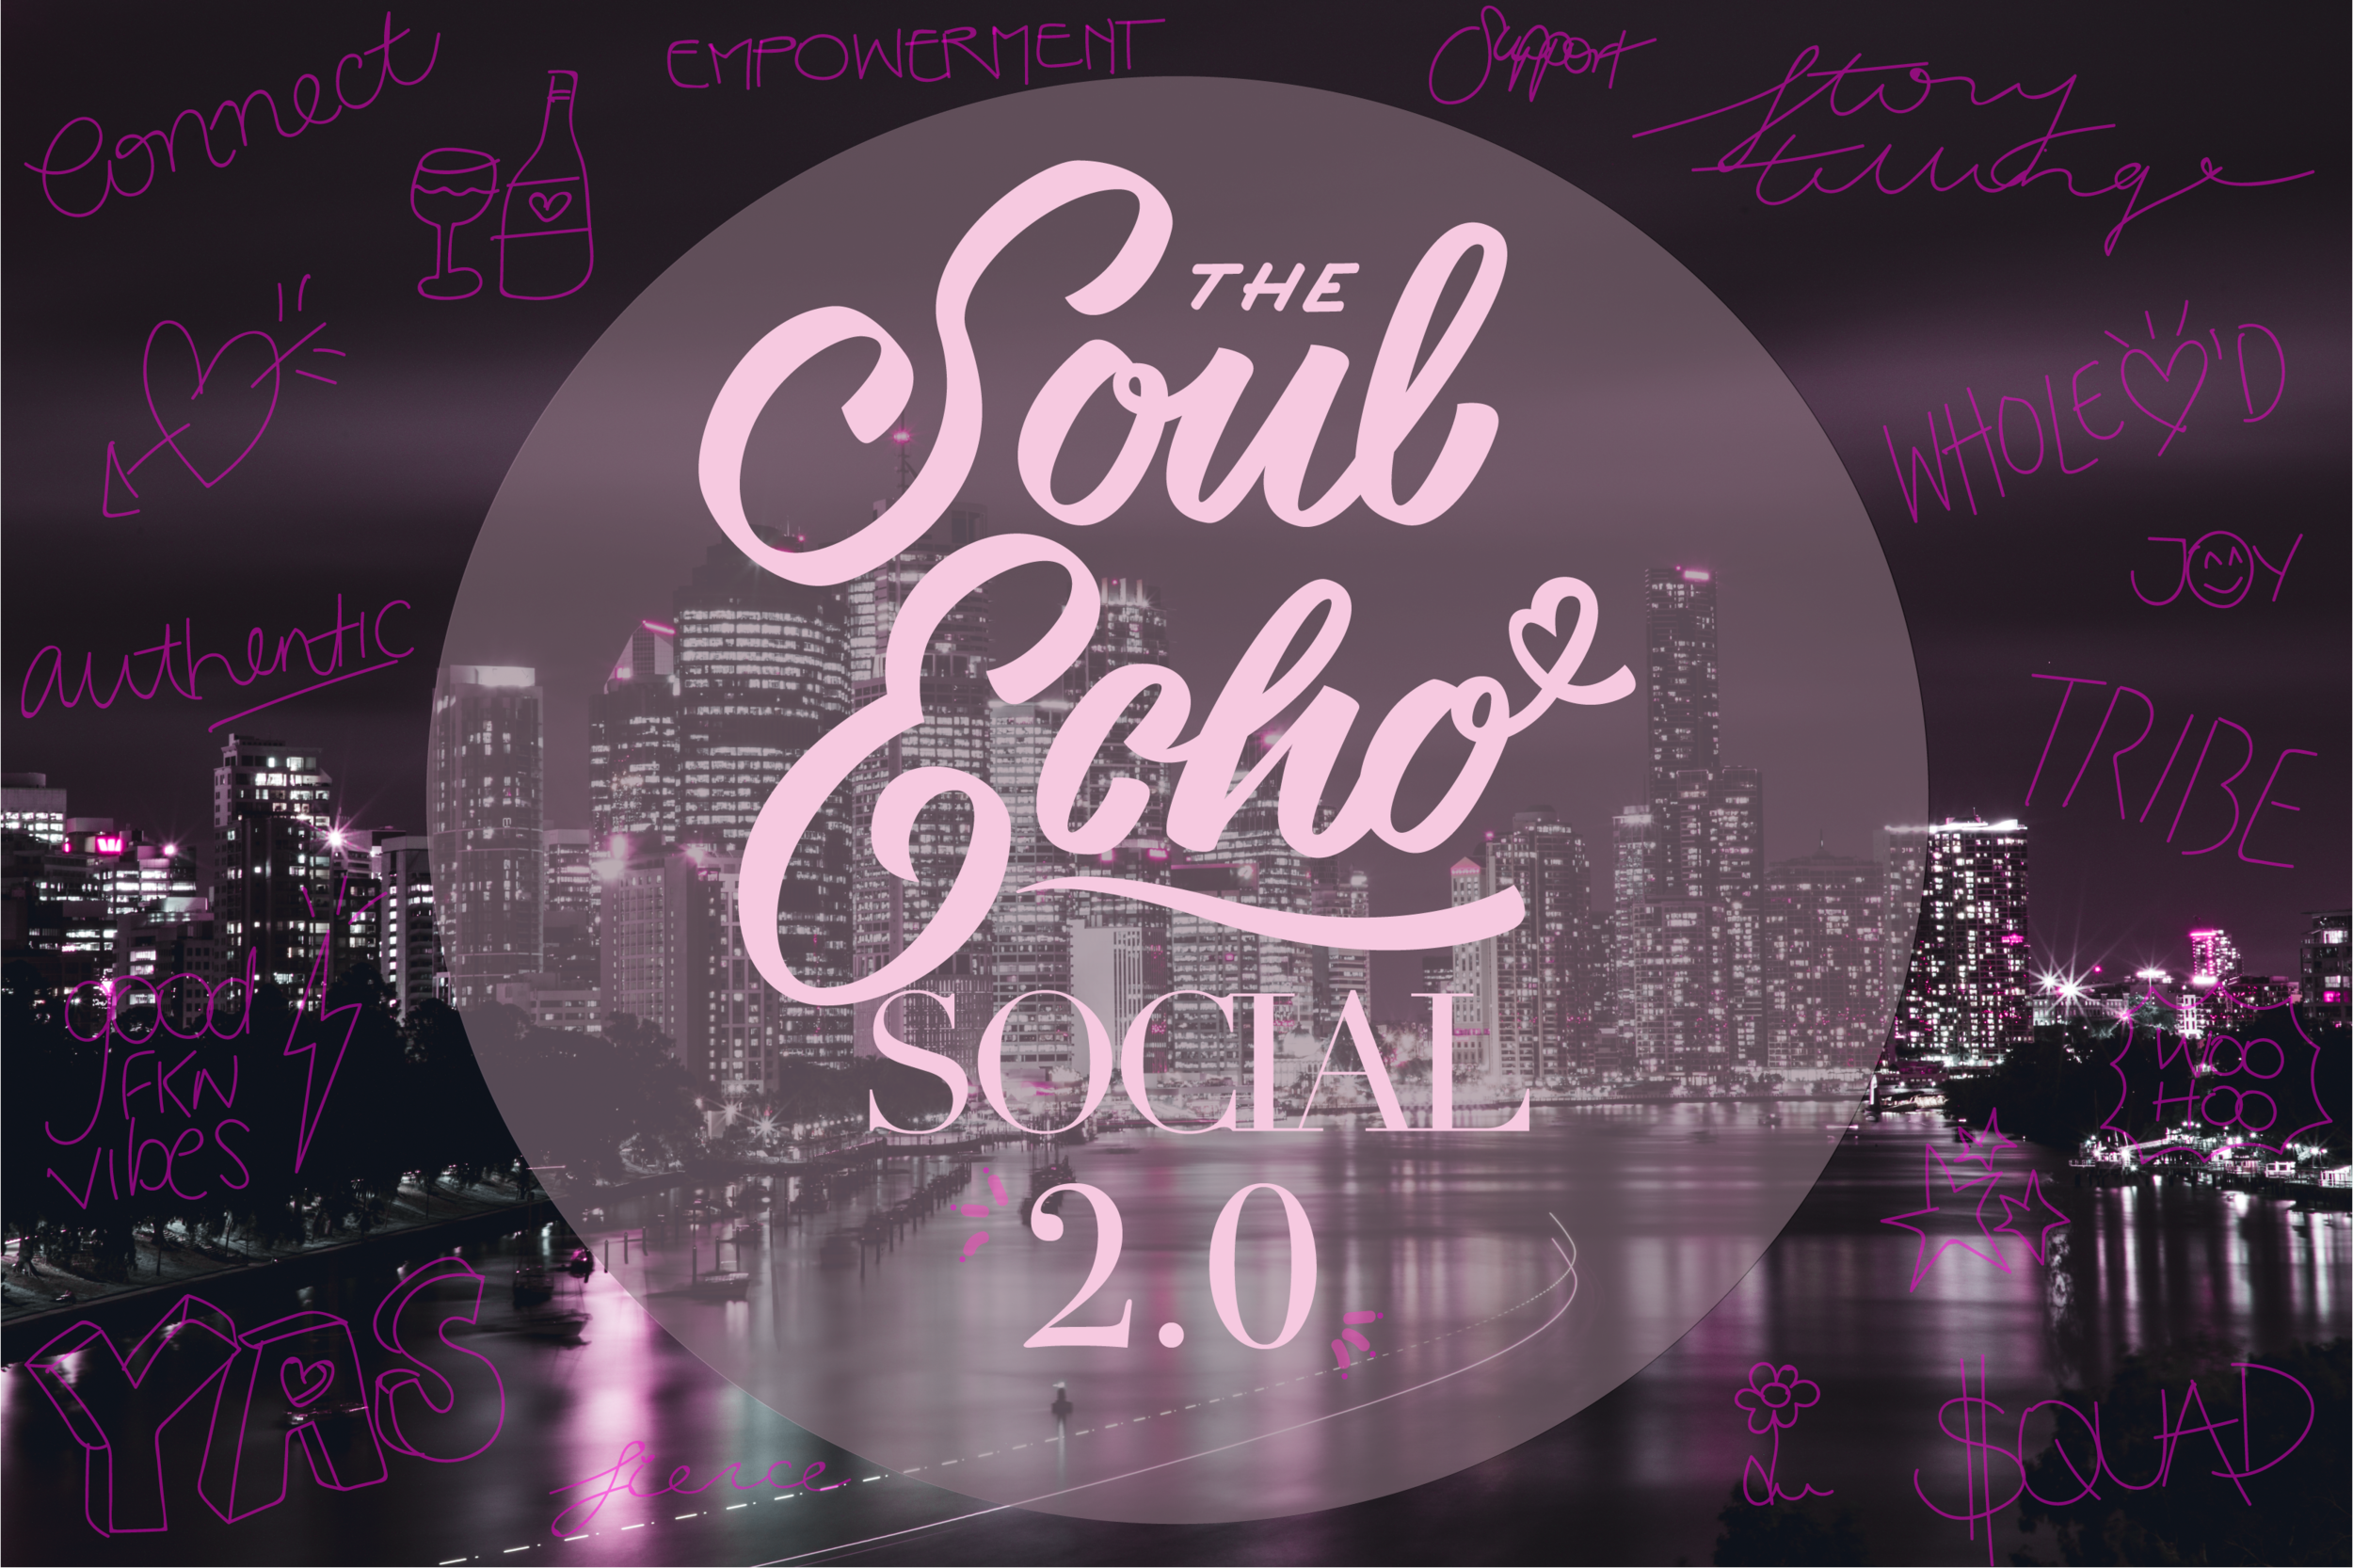 The Soul Echo Social two point oh33.png